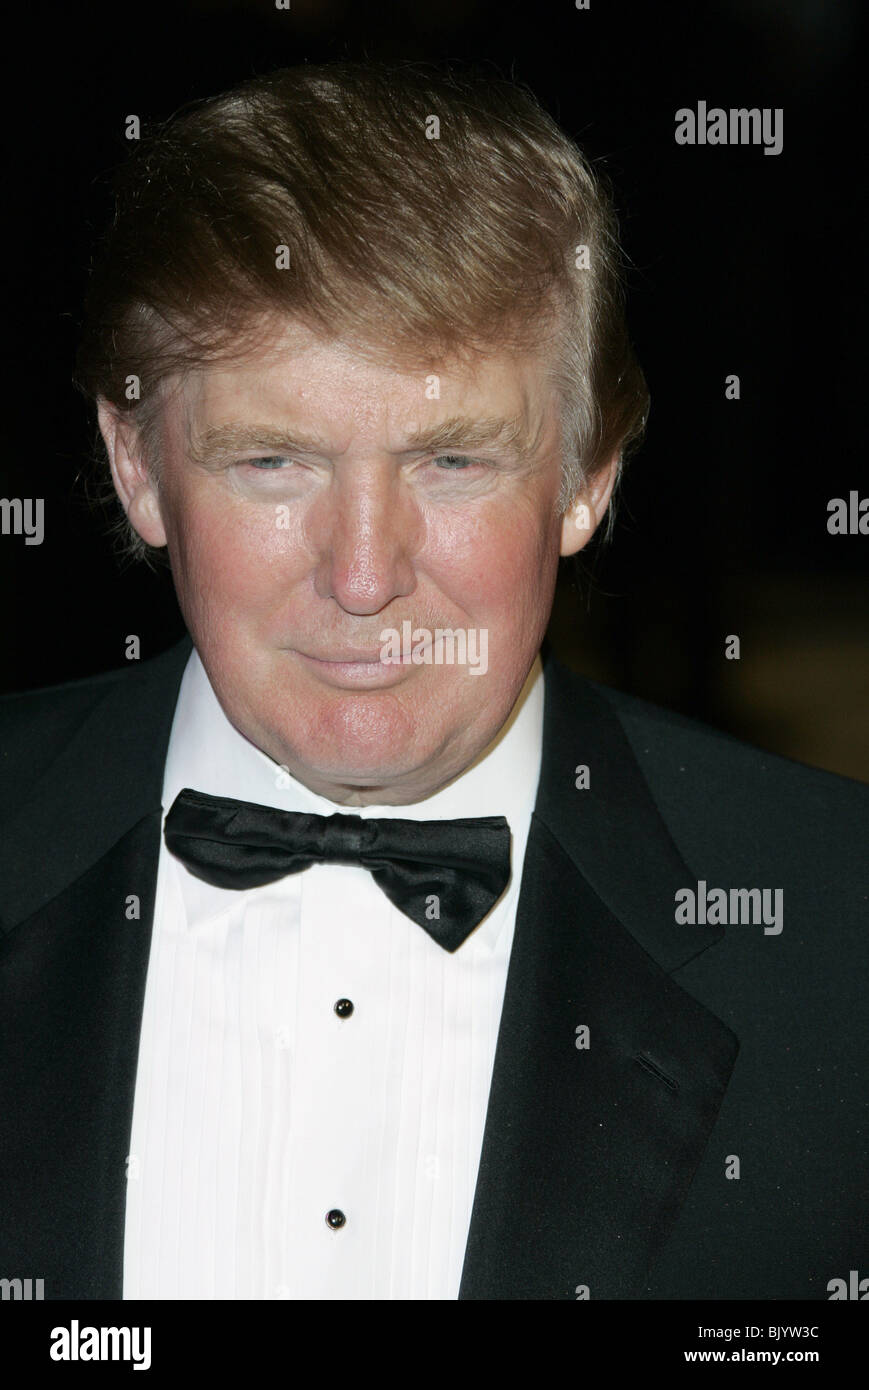 DONALD TRUMP VANITY FAIR OSCAR PARTY 2005 MORTONS WEST HOLLYWOOD LA USA 27 February 2005 - Stock Image